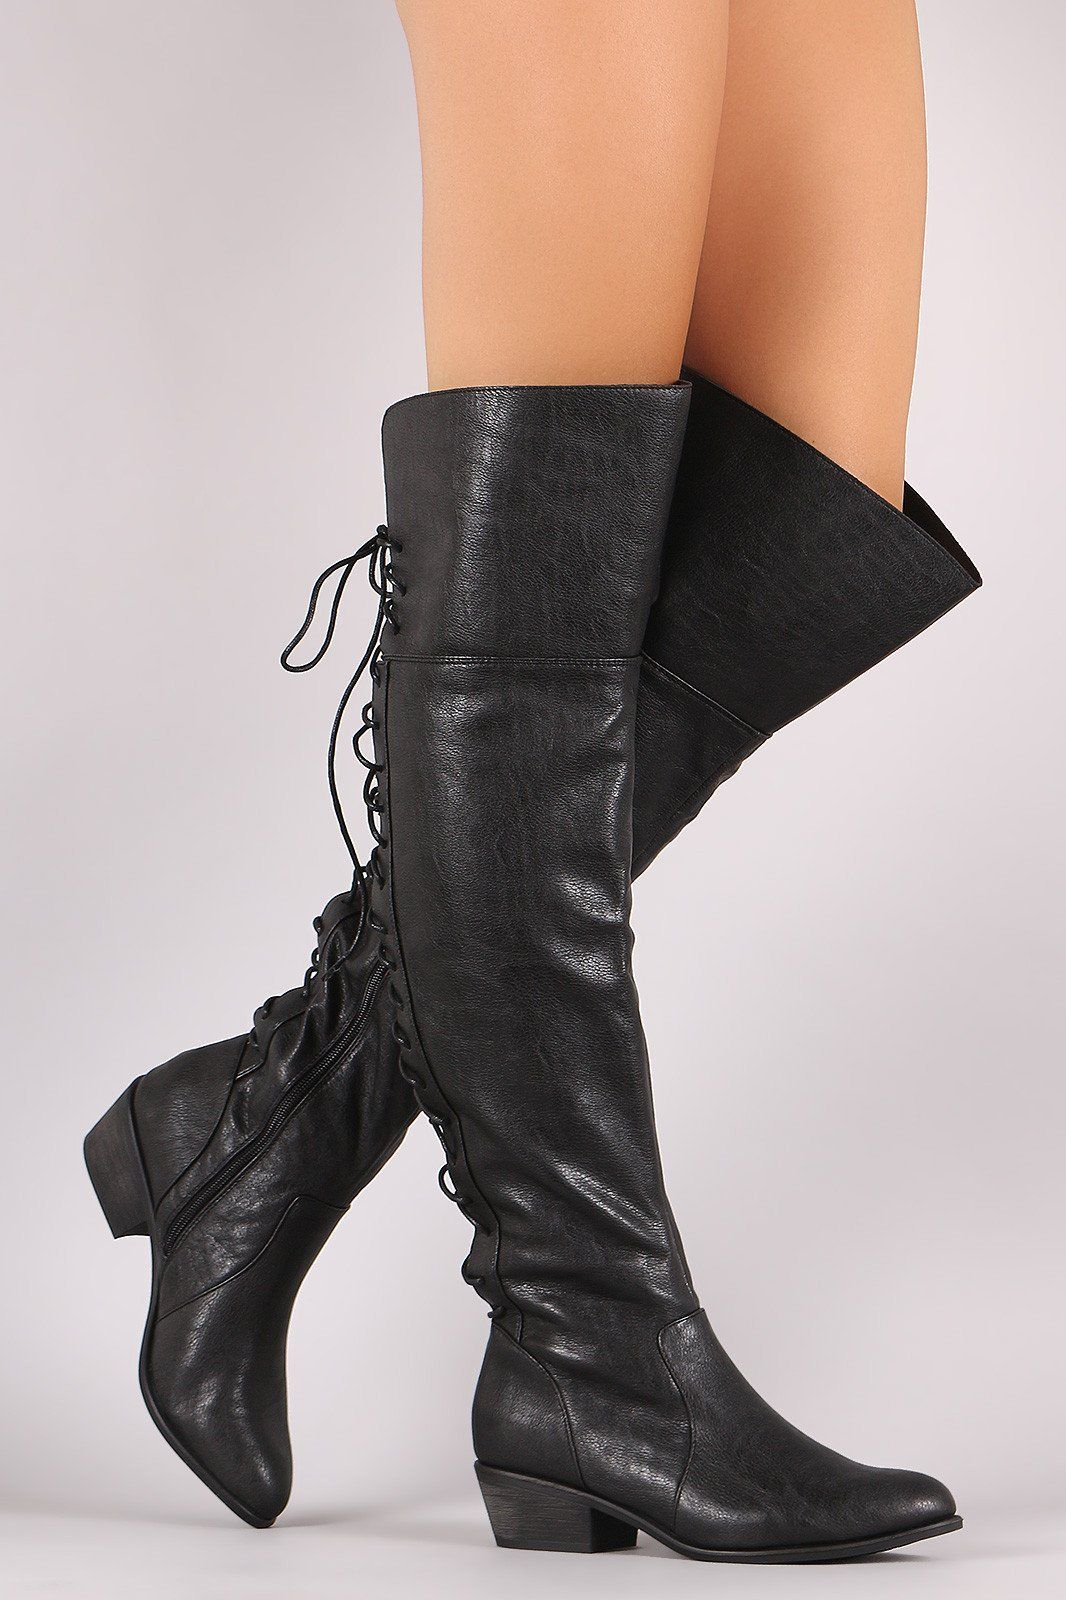 35a2a277eef Breckelle Back Lace Up Over-The-Knee Boots